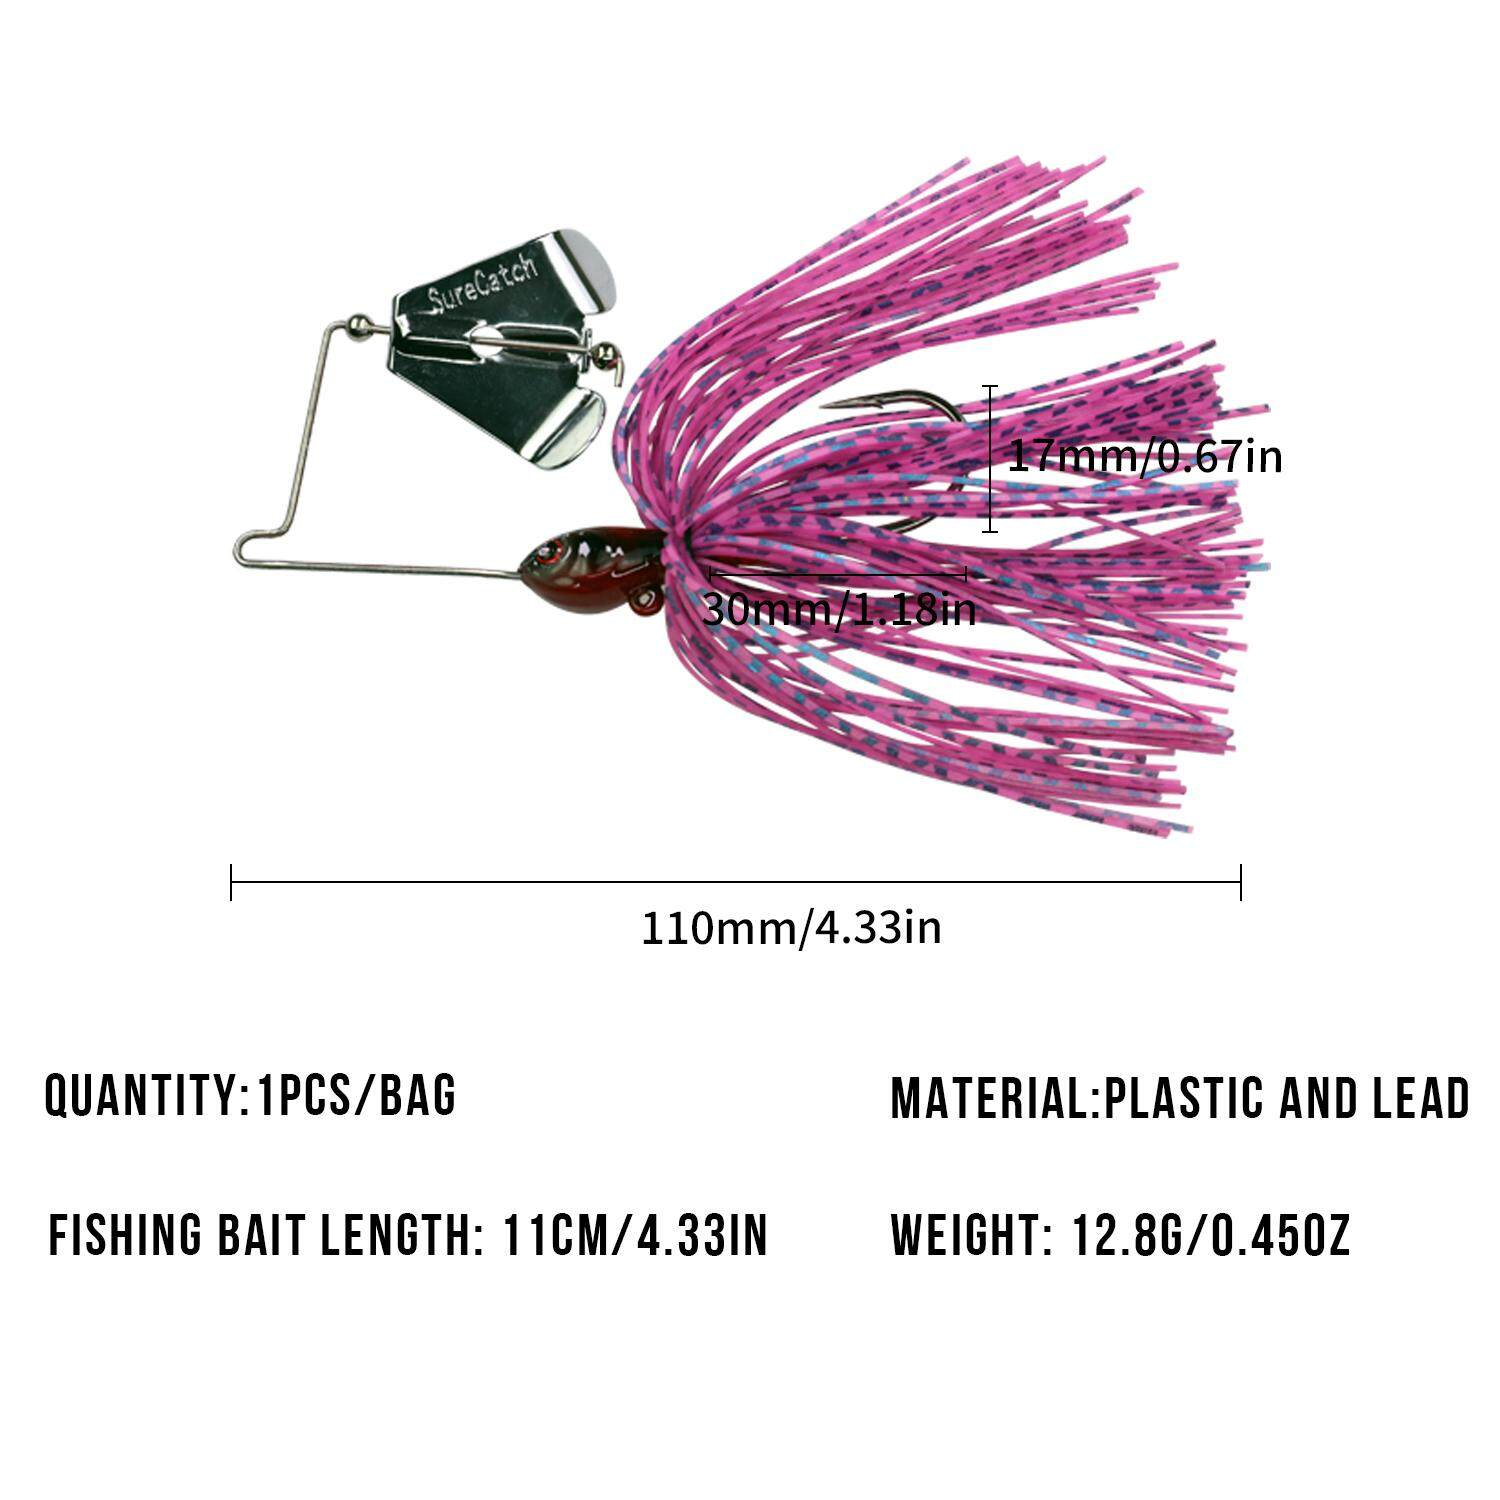 1pcs Spinnerbait Fishing Lures 12.8g/0.45oz Buzzbait Fishing Lures For Bass with swim jig Blades Lure